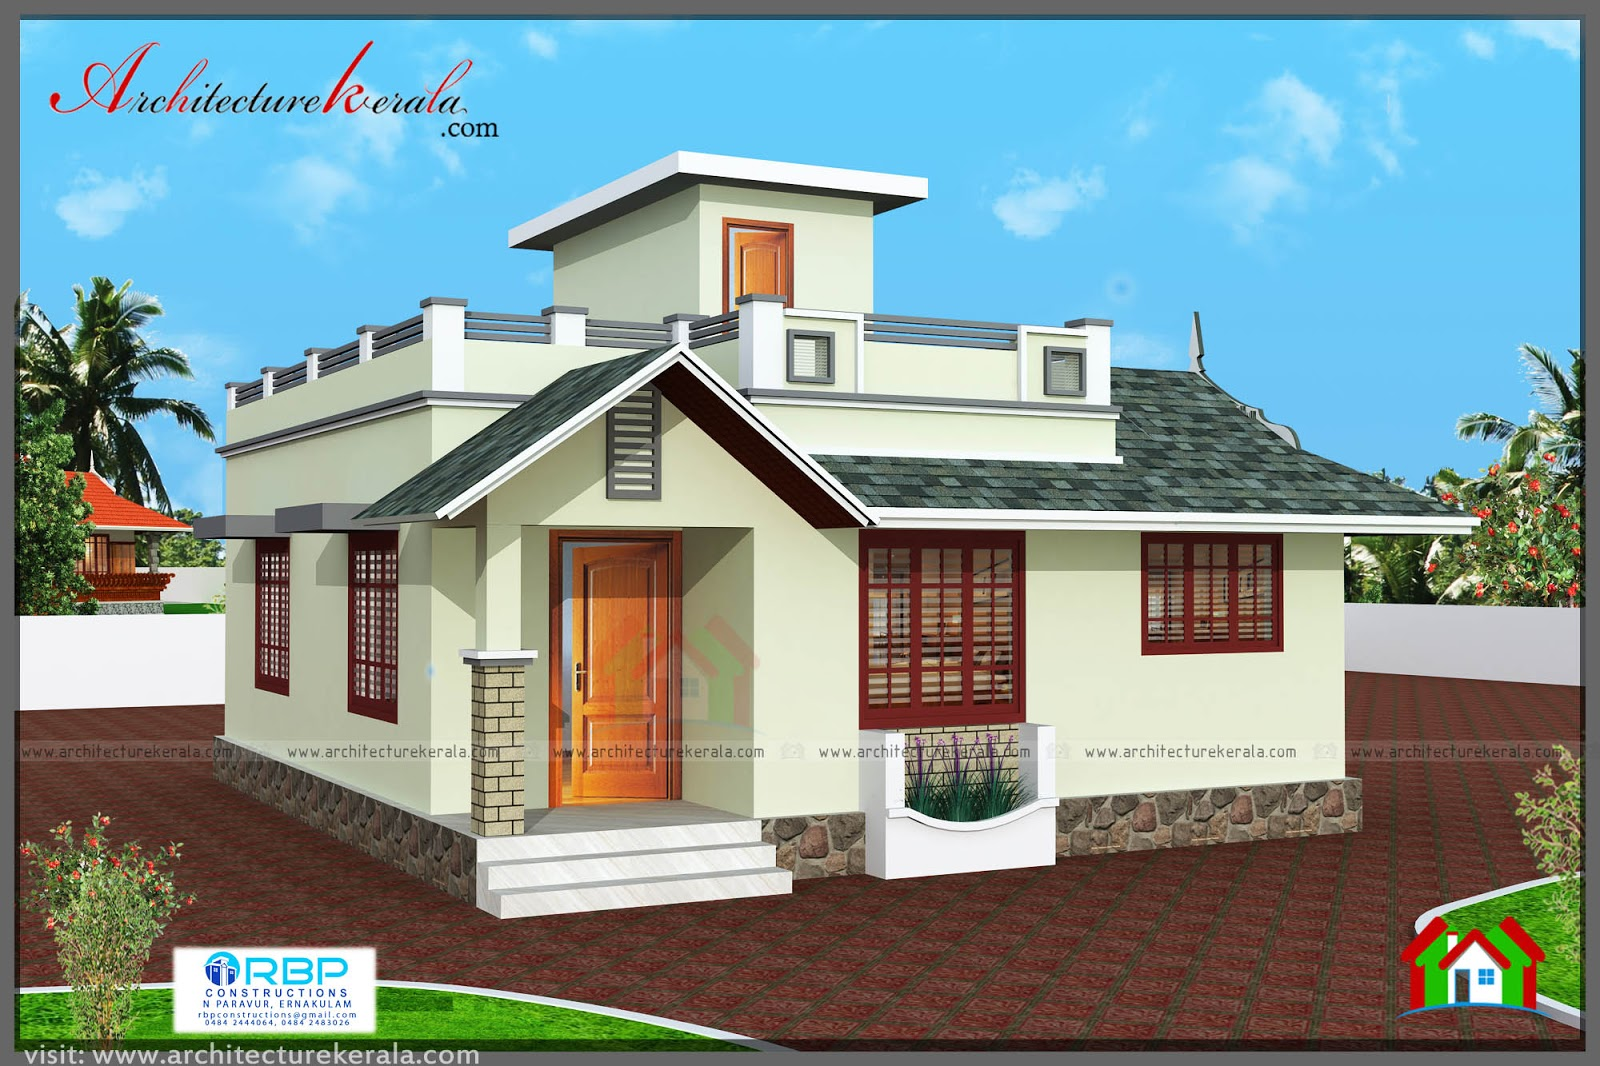 2 bedroom house plan and elevation in 700 sqft architecture kerala. Black Bedroom Furniture Sets. Home Design Ideas